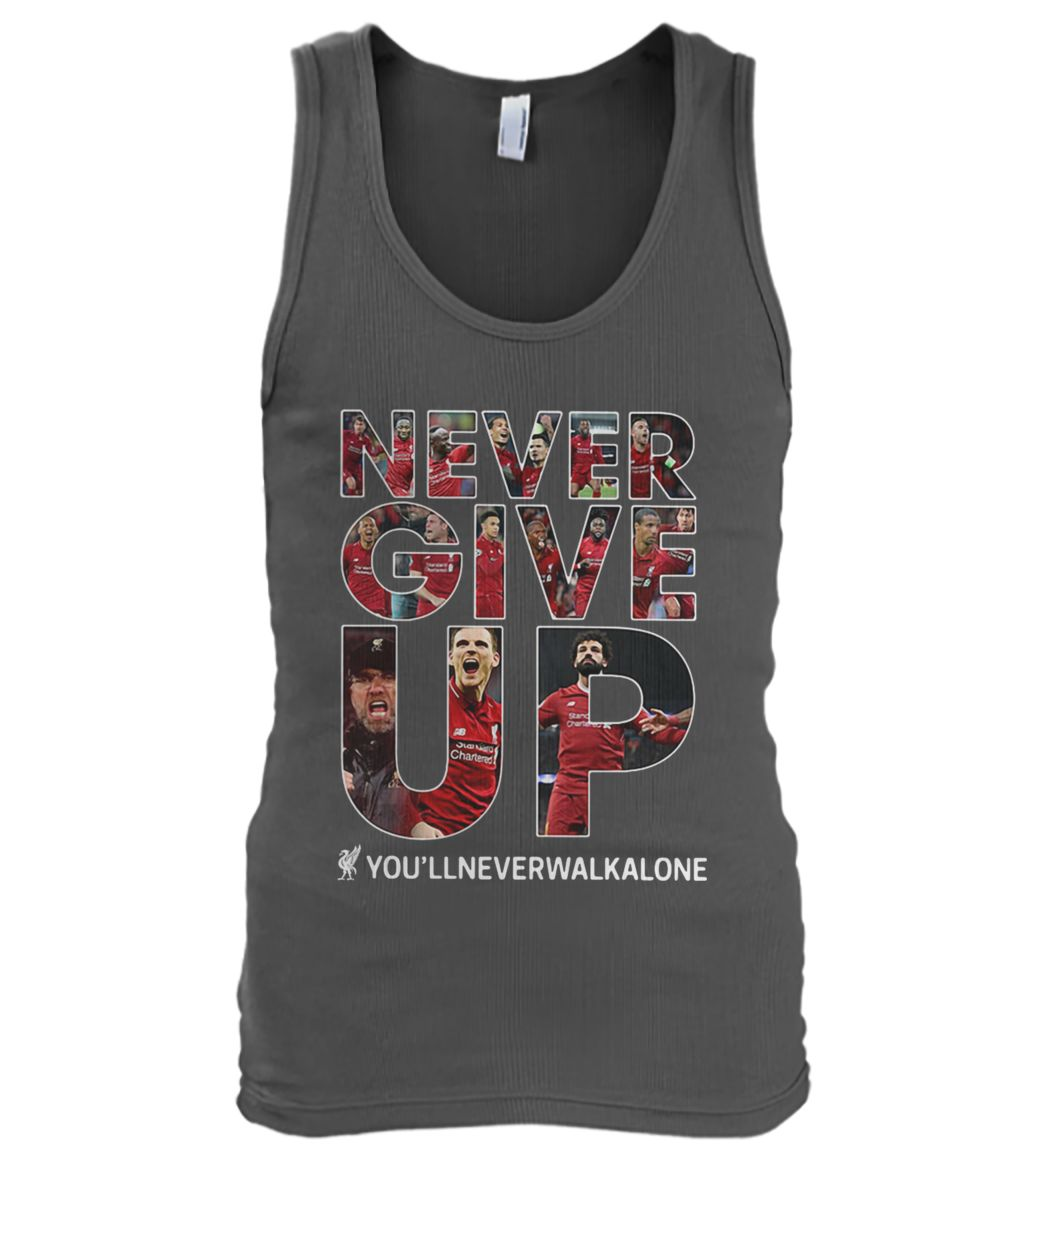 Liverpool never give up you'llneverwalkalone men's tank top